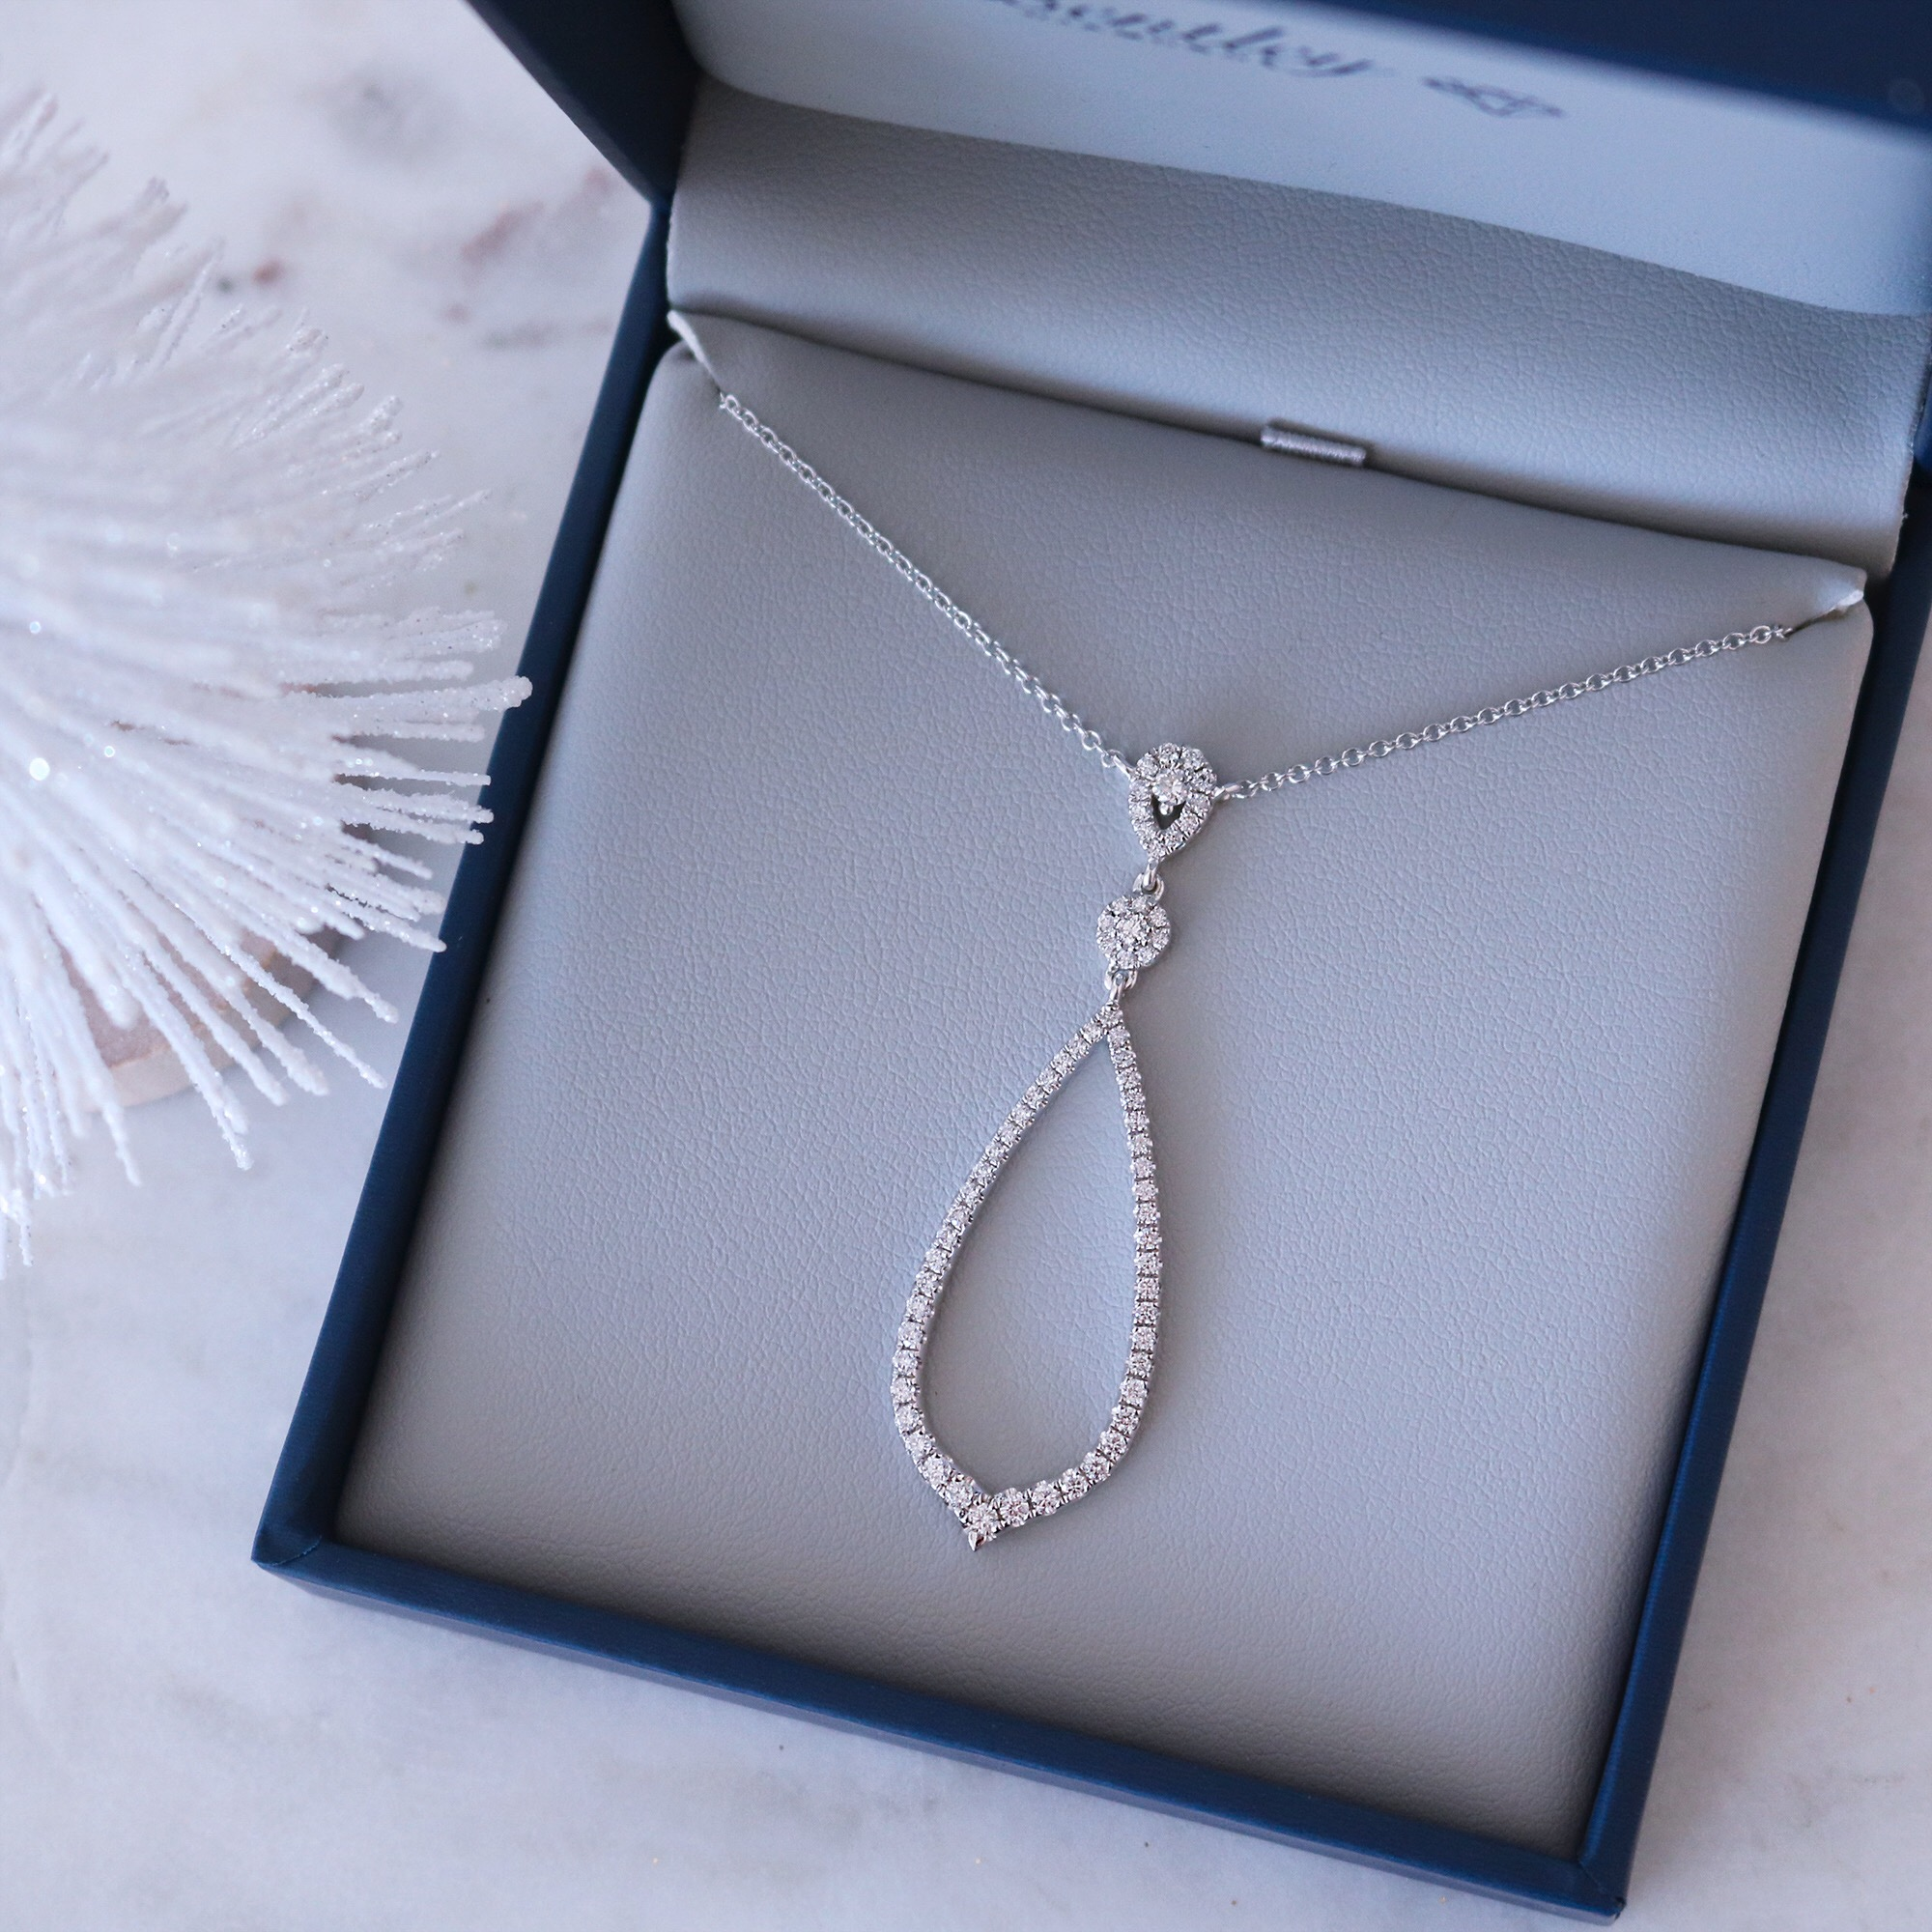 Bentley Diamond - Diamond Necklace